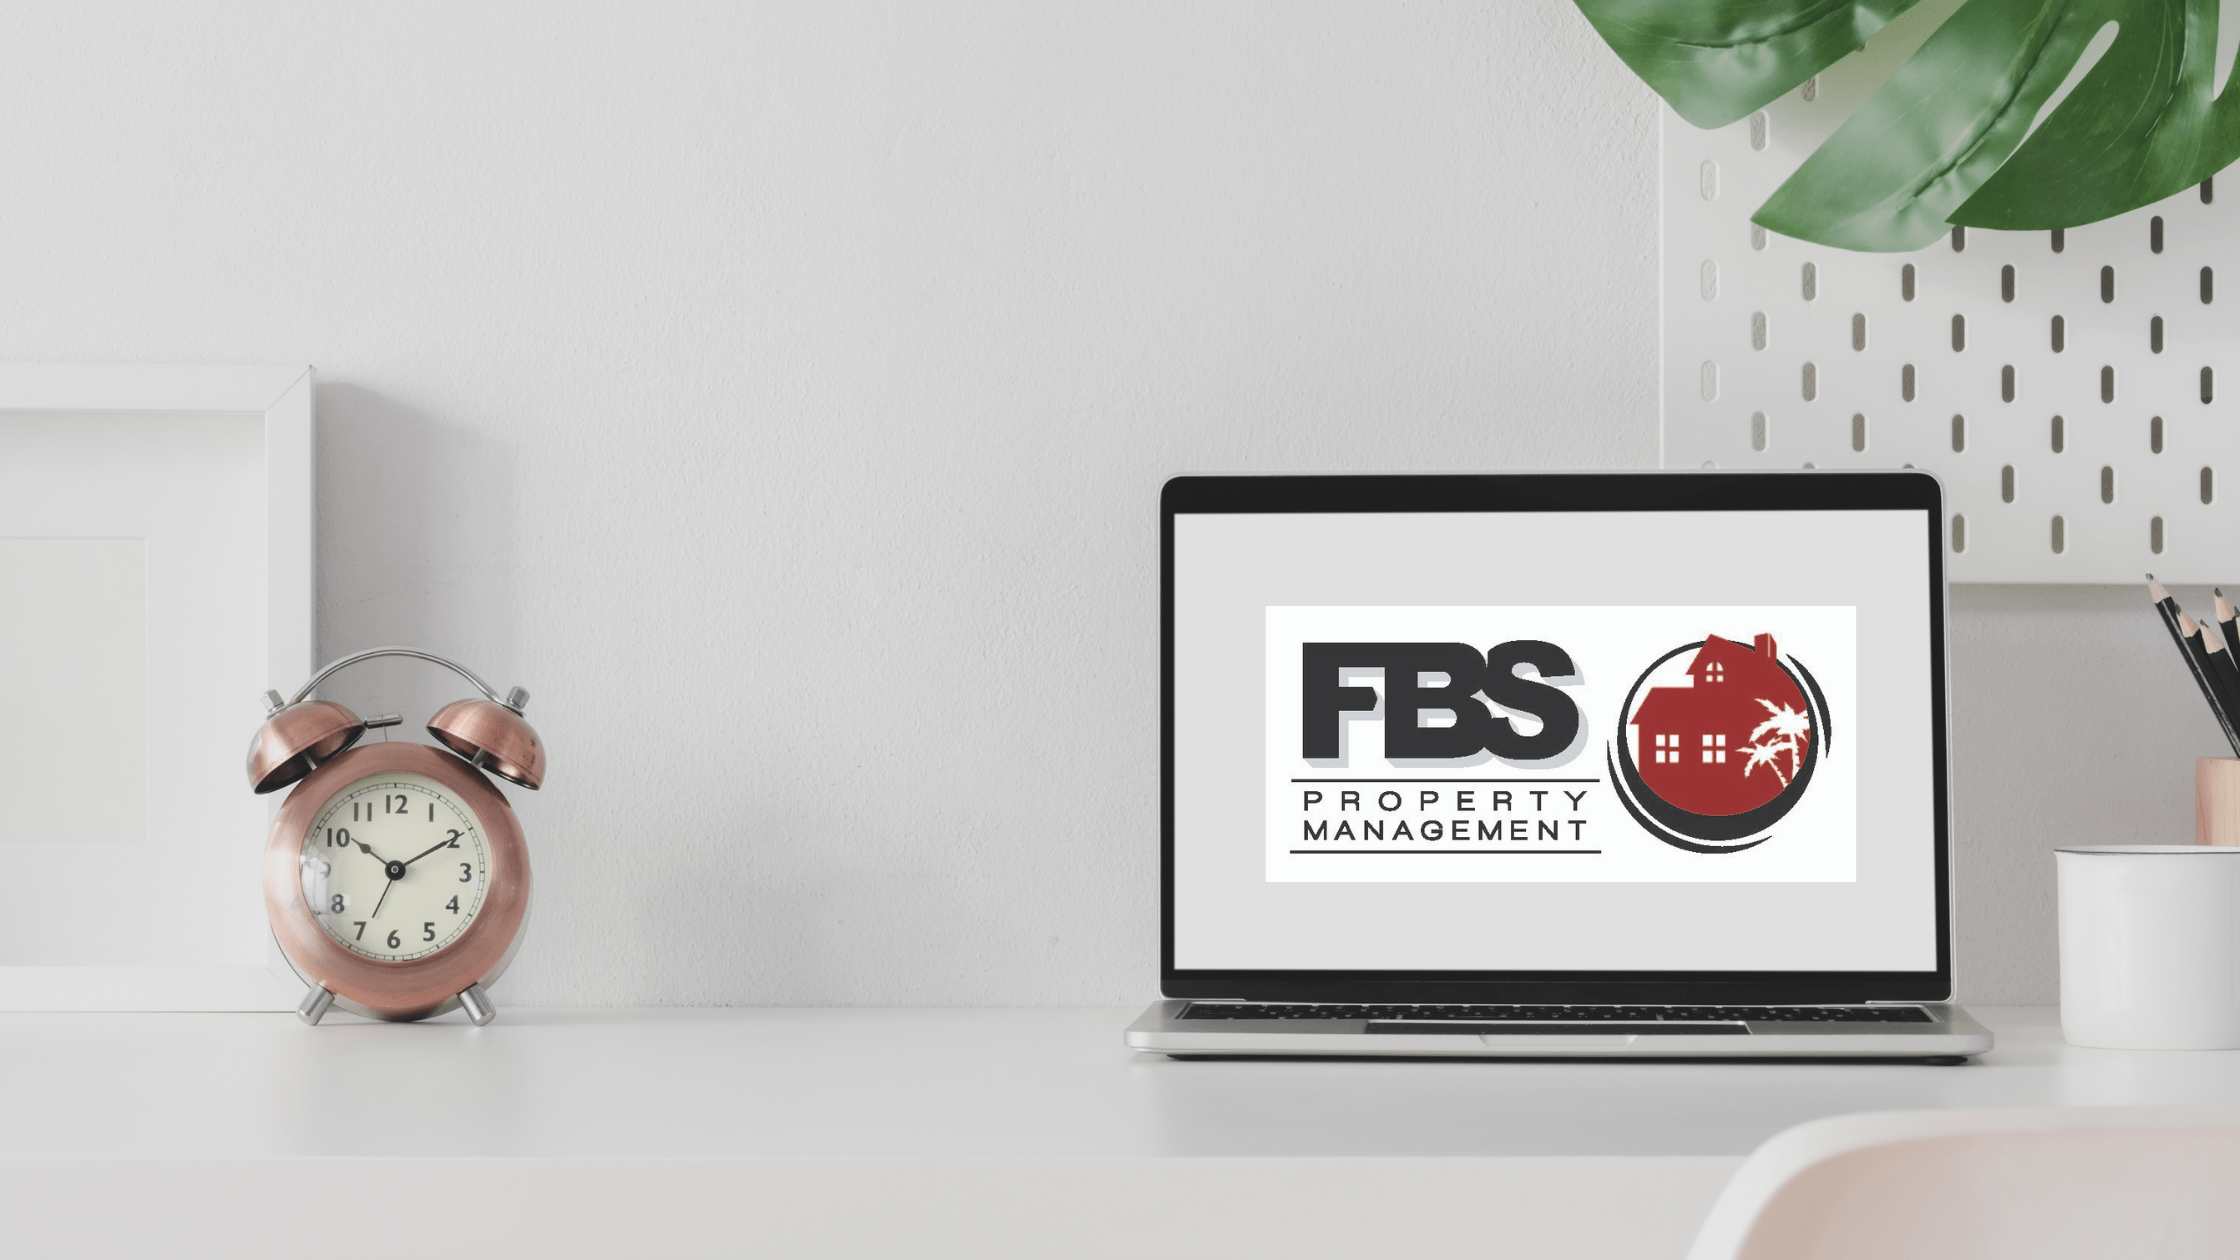 marketing your rental property takes effort, but not with FBS!